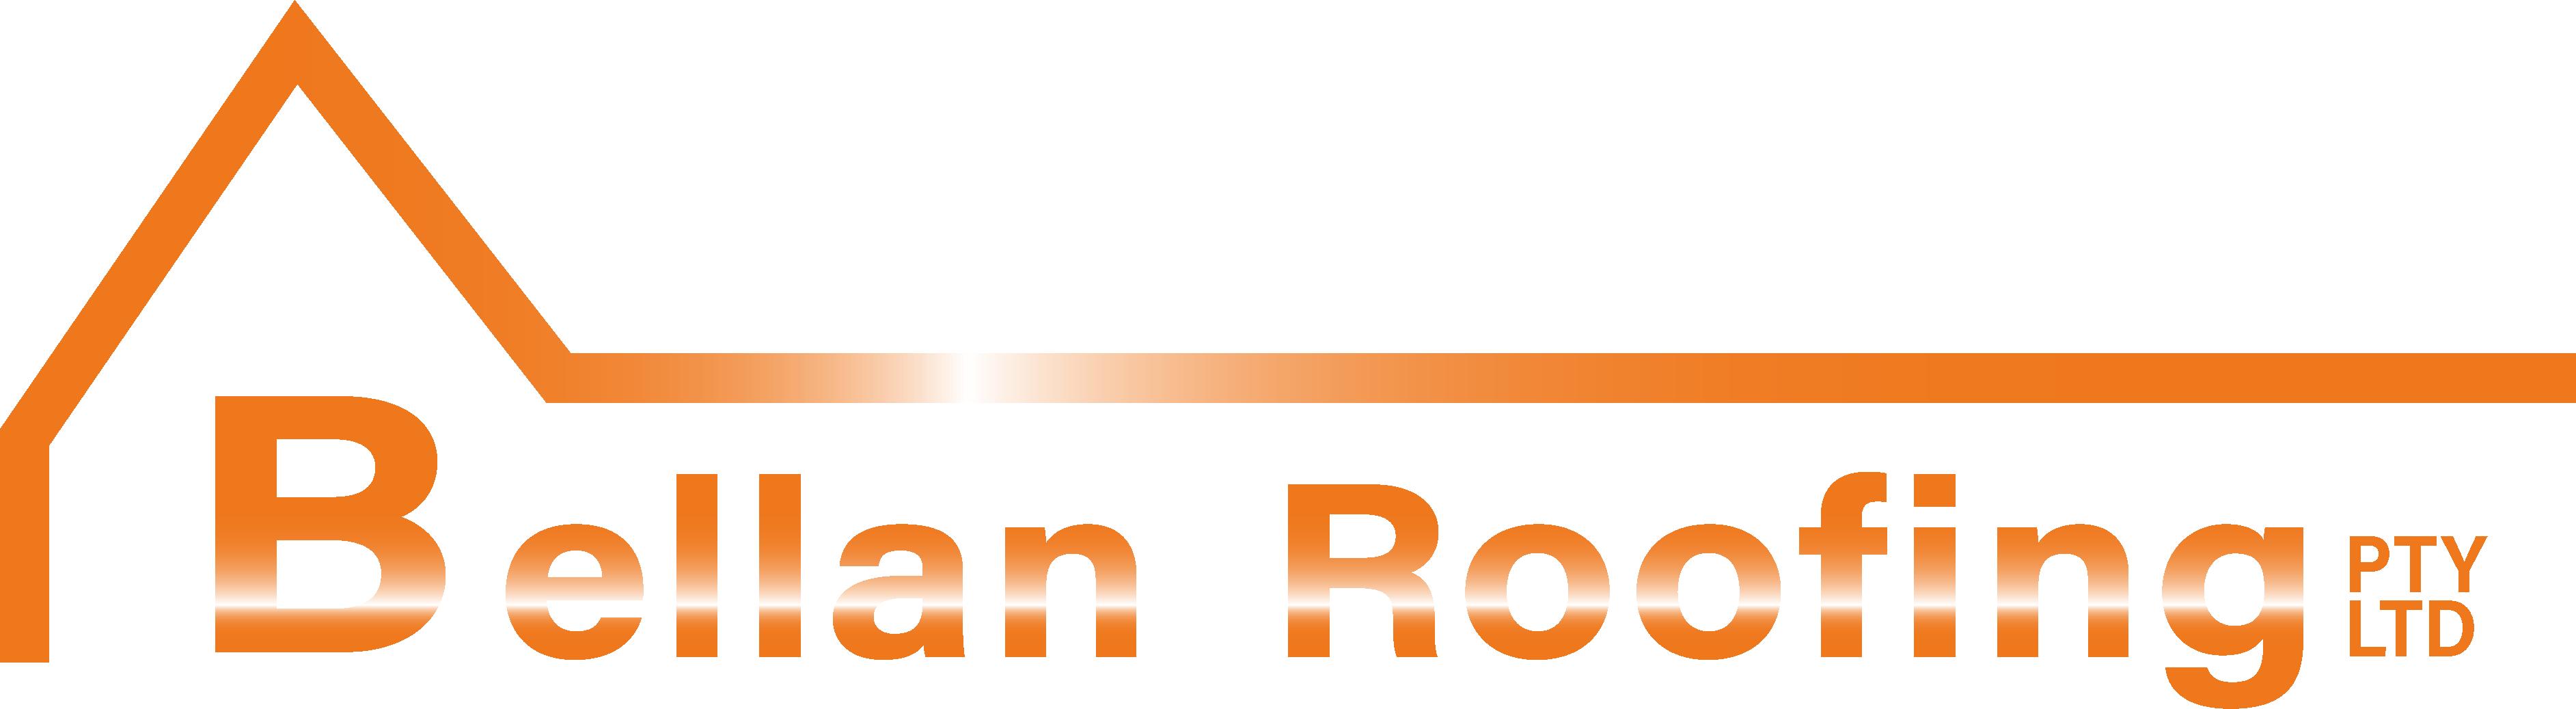 bellan roofing pty ltd